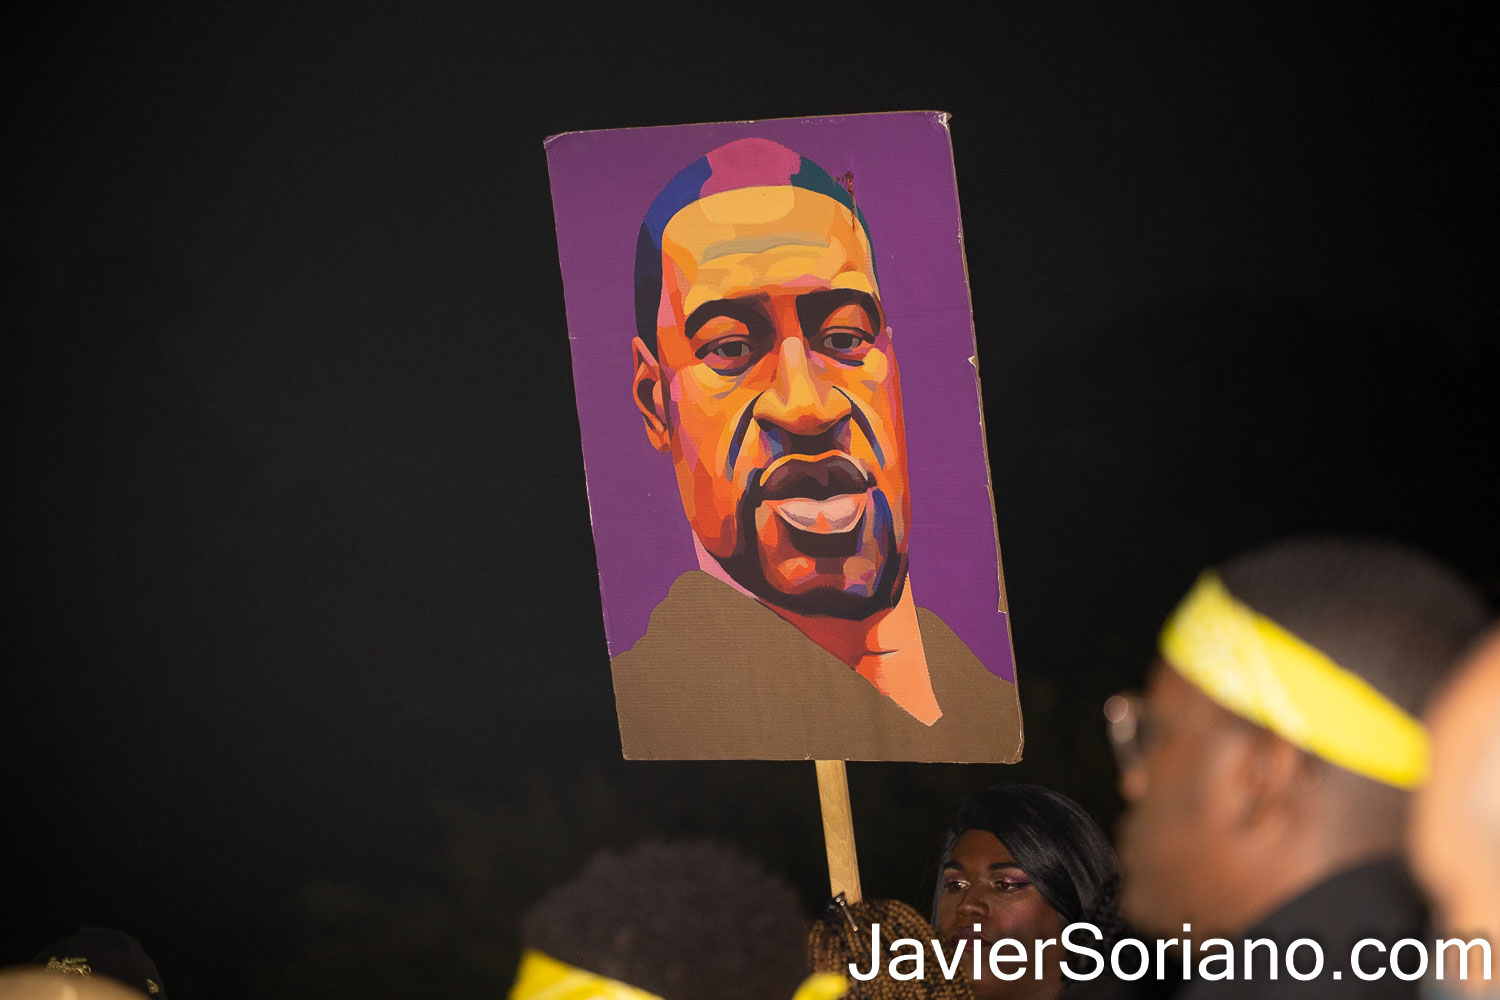 Tuesday, May 25, 2021. Brooklyn, New York City - On the one year anniversary of the murder of George Floyd, some people held a remembrance vigil at the Brooklyn Museum. THIS PHOTO: Trans woman Qween Andy Jean holding a painting of George Floyd. Photo by Javier Soriano/www.JavierSoriano.com